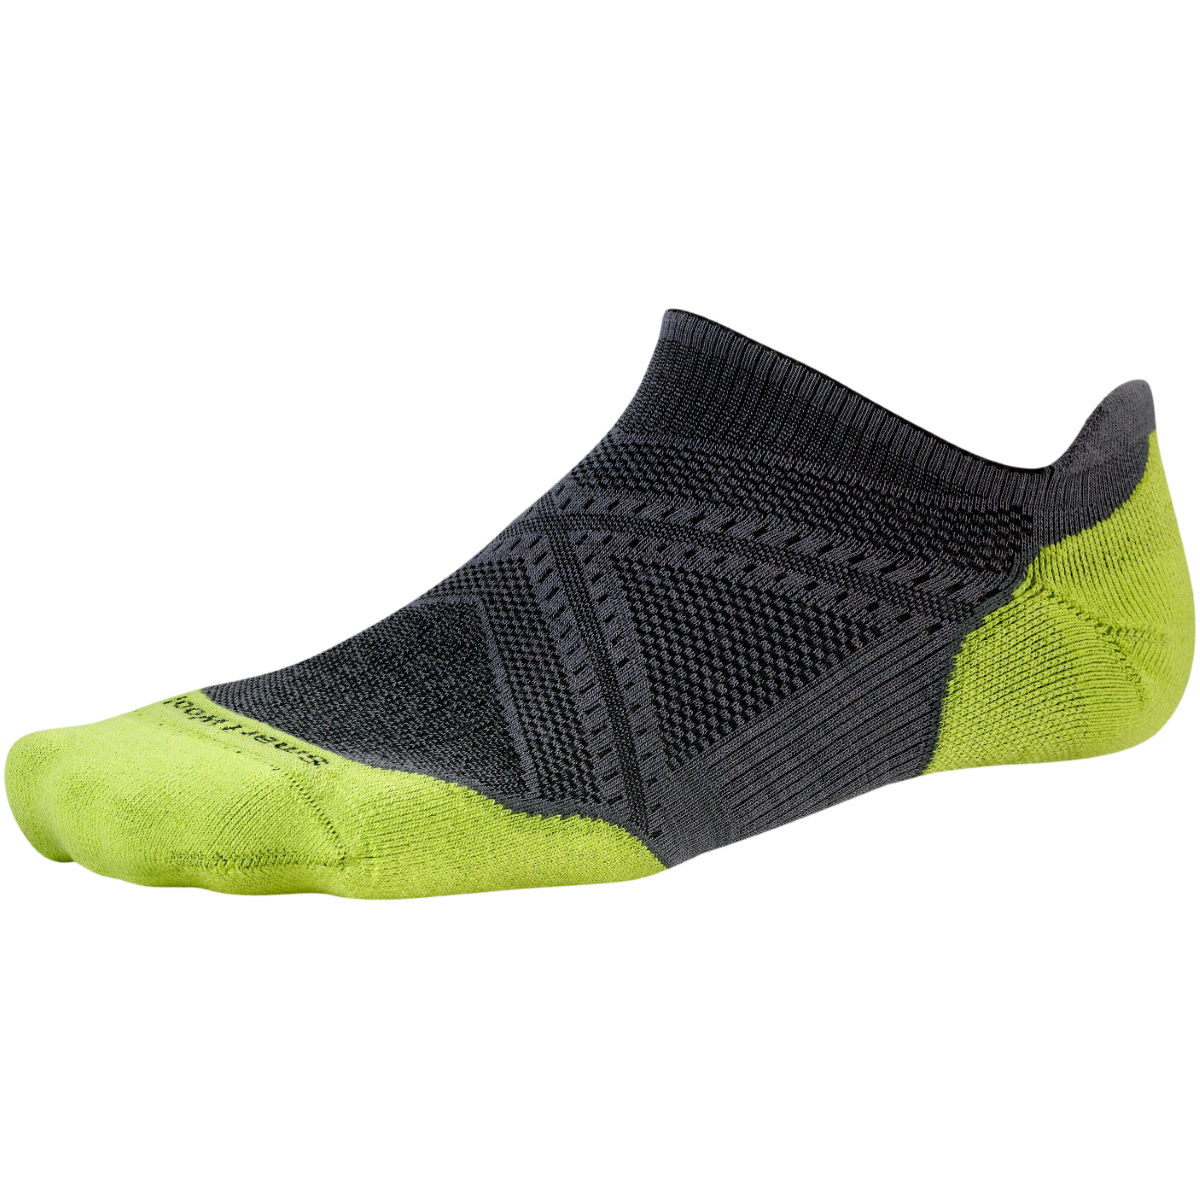 Calcetines Smartwool PhD Run Light Elite Micro - Calcetines